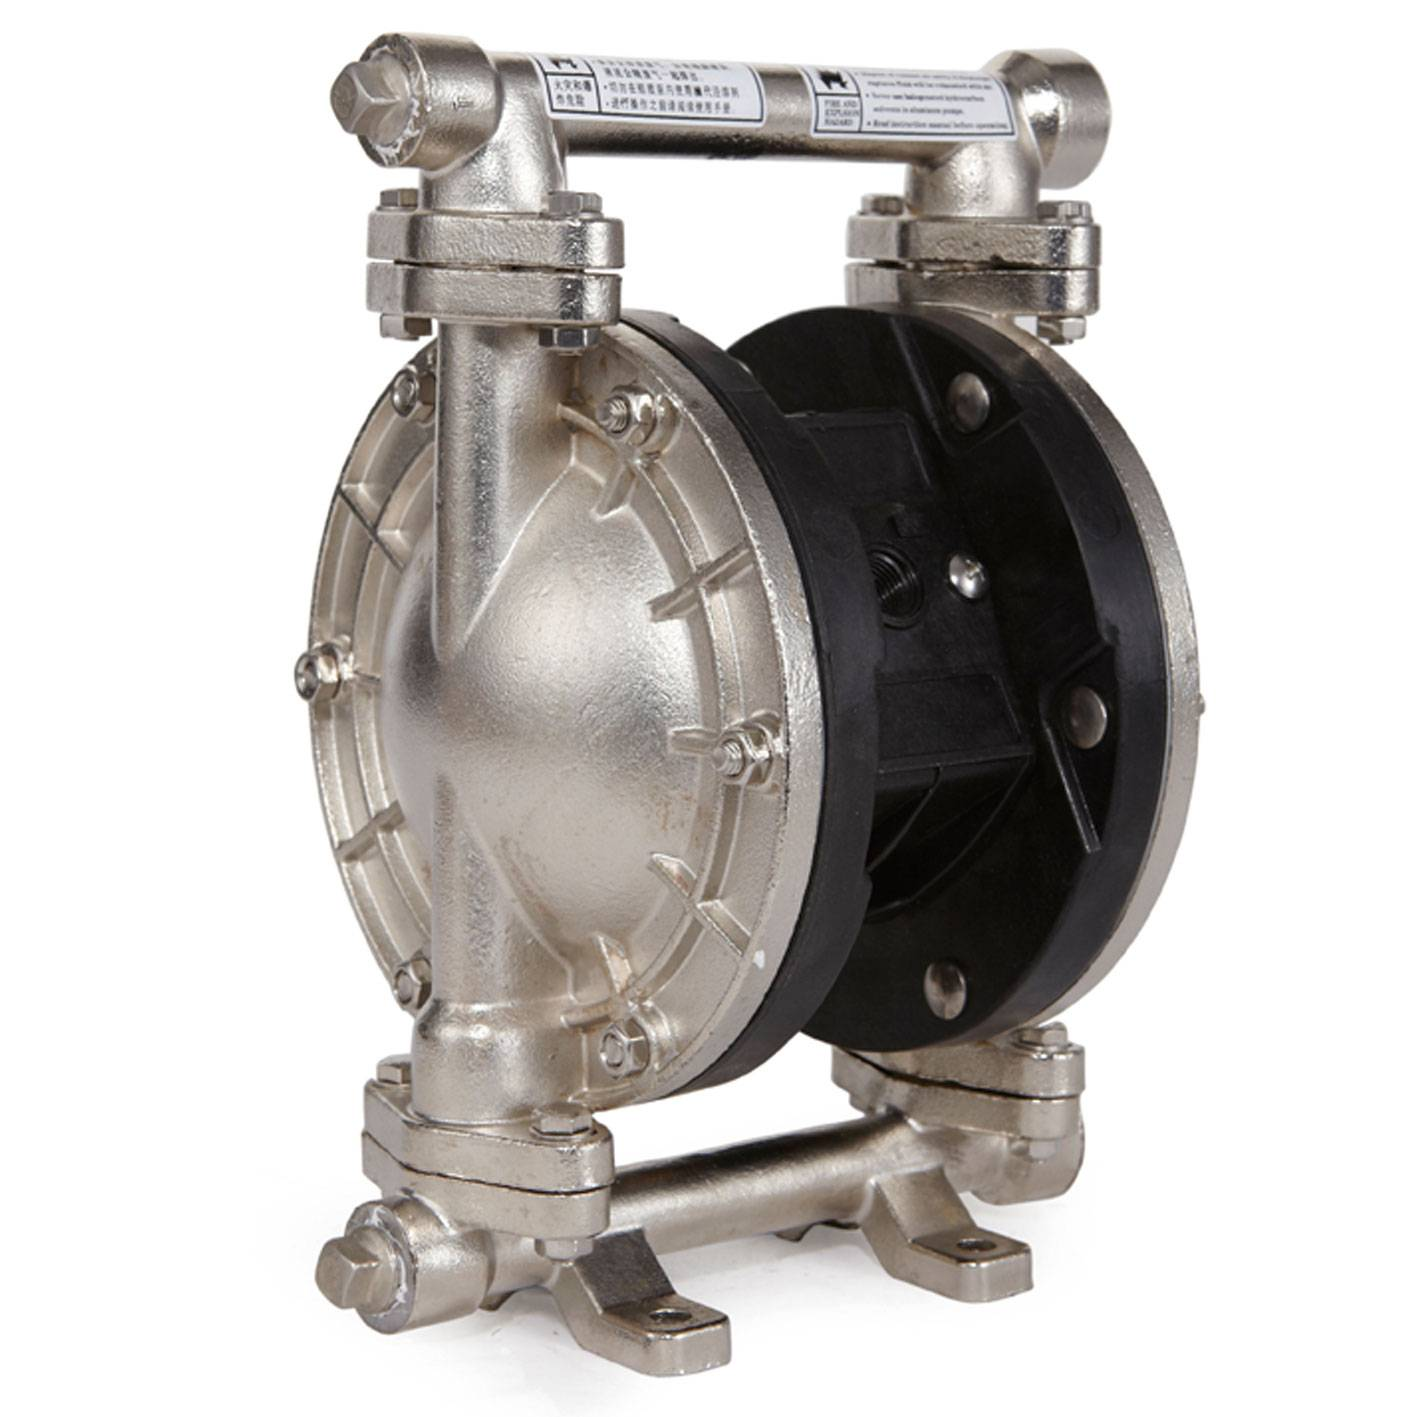 QBY3- 10/15 Cast Steel Air Operated Diaphragm Pump